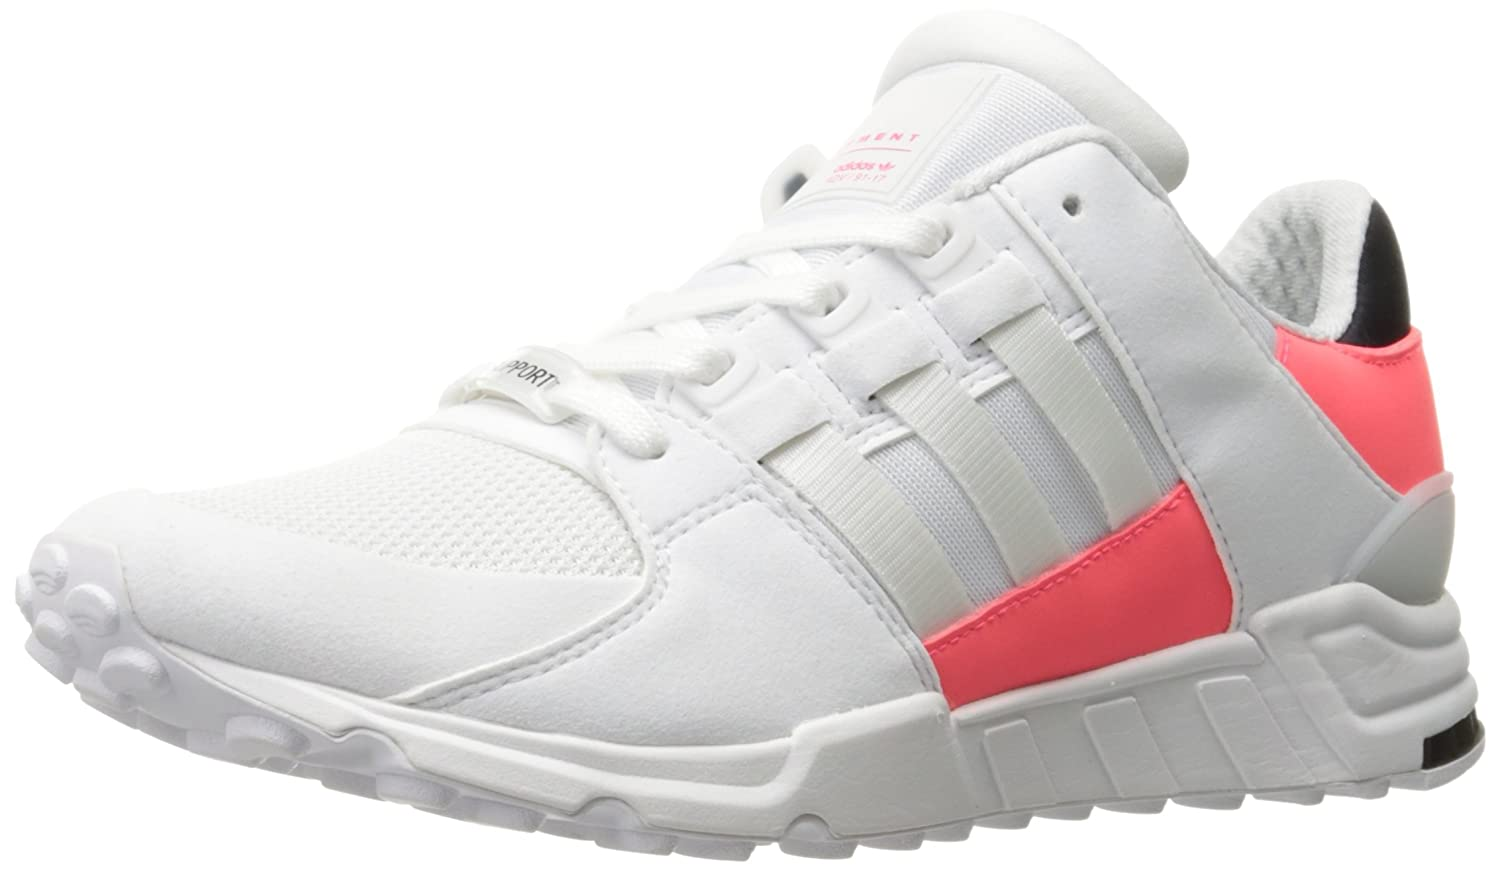 White   White   Turbo F11 Adidas Originals Men's EQT Support Rf Fashion Sneaker